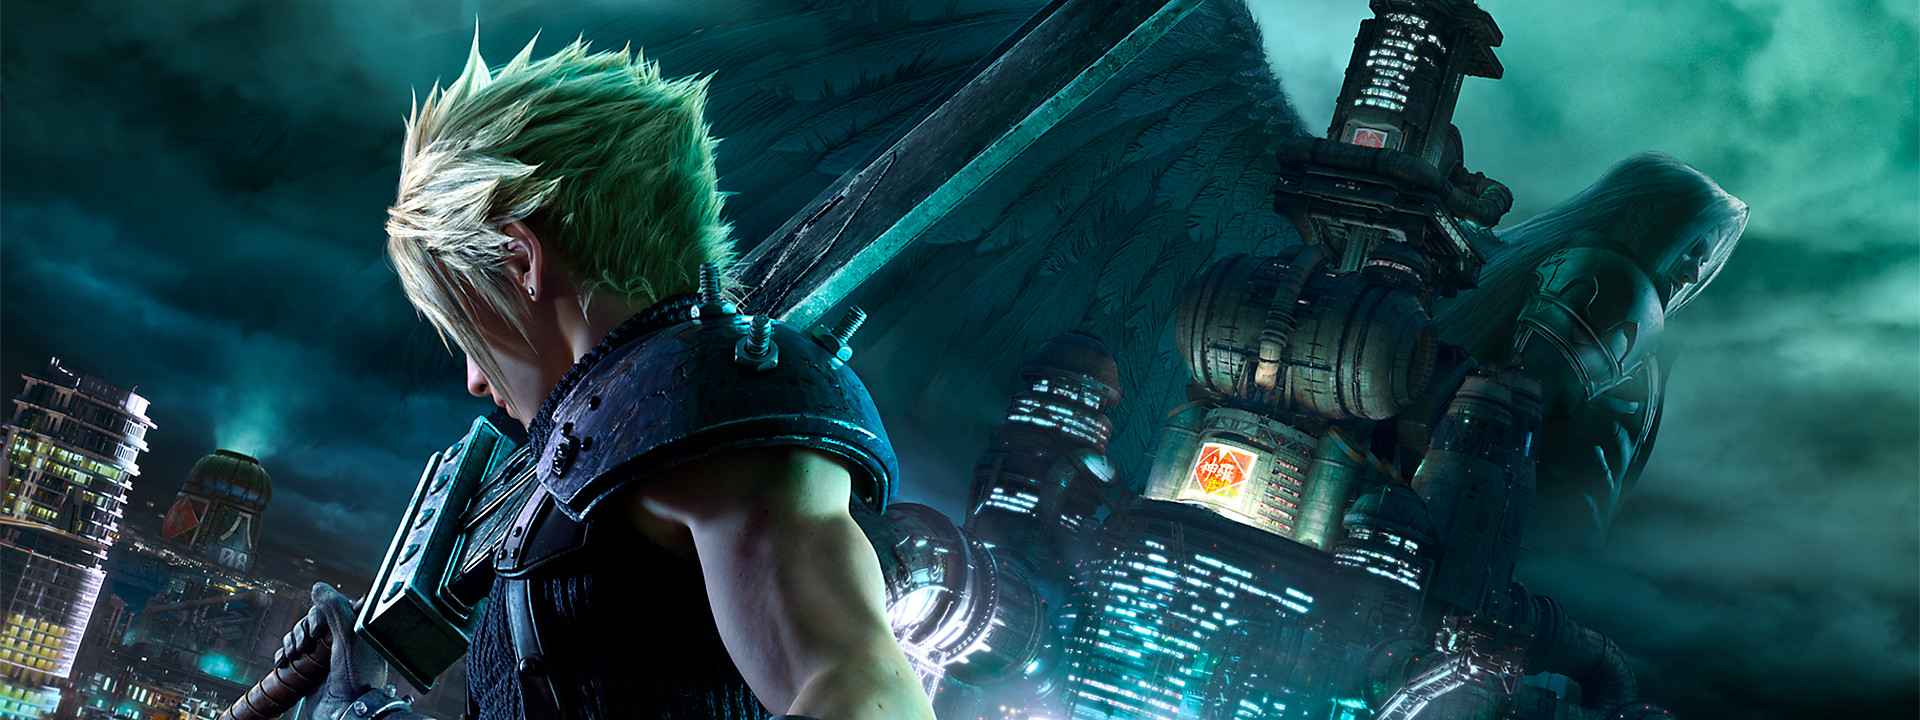 Final Fantasy VII Remake (www.playstation.com)